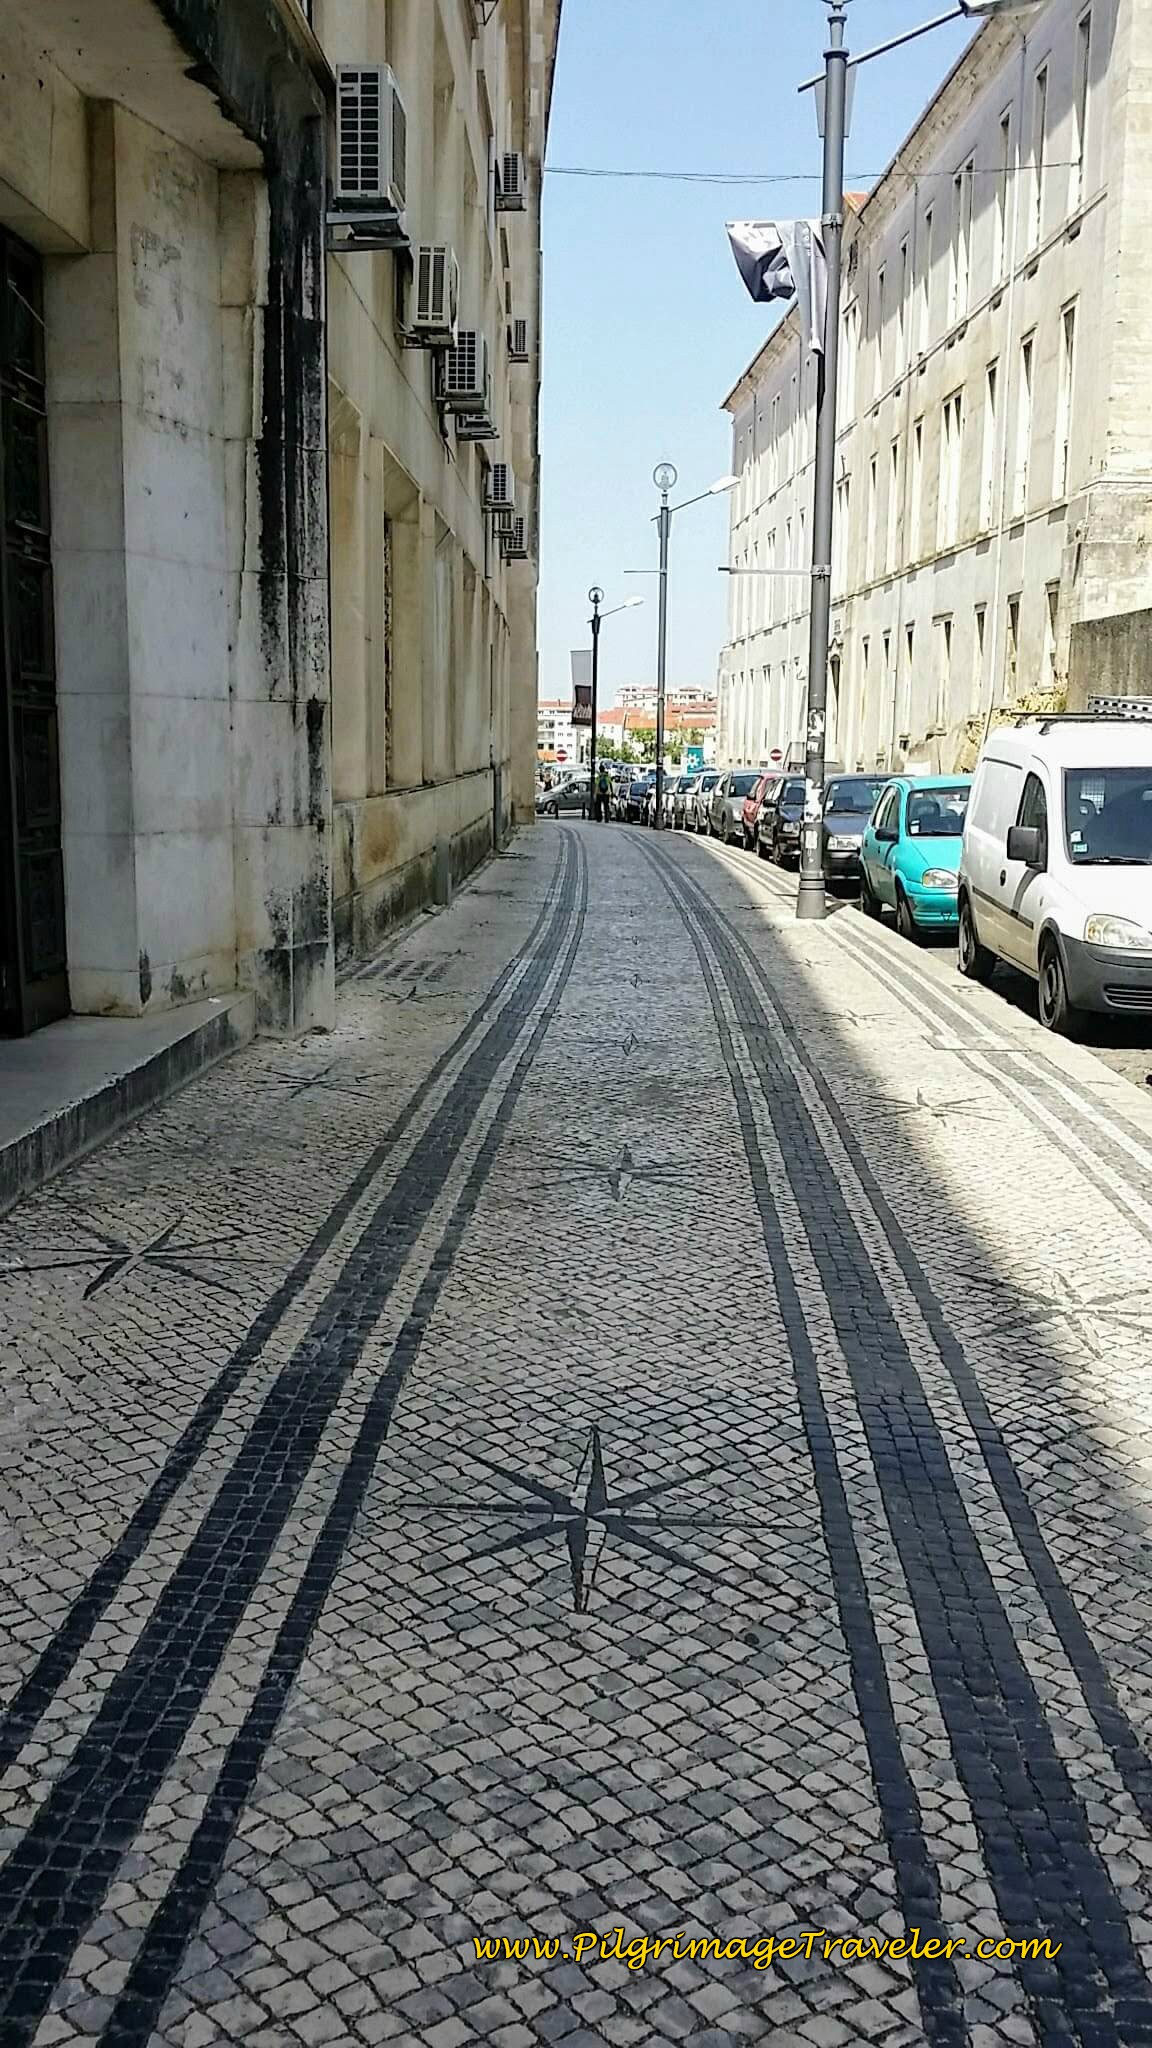 Rua Estudos, Granite Setts (Cobblestone), University of Coimbra Campus in Portugal